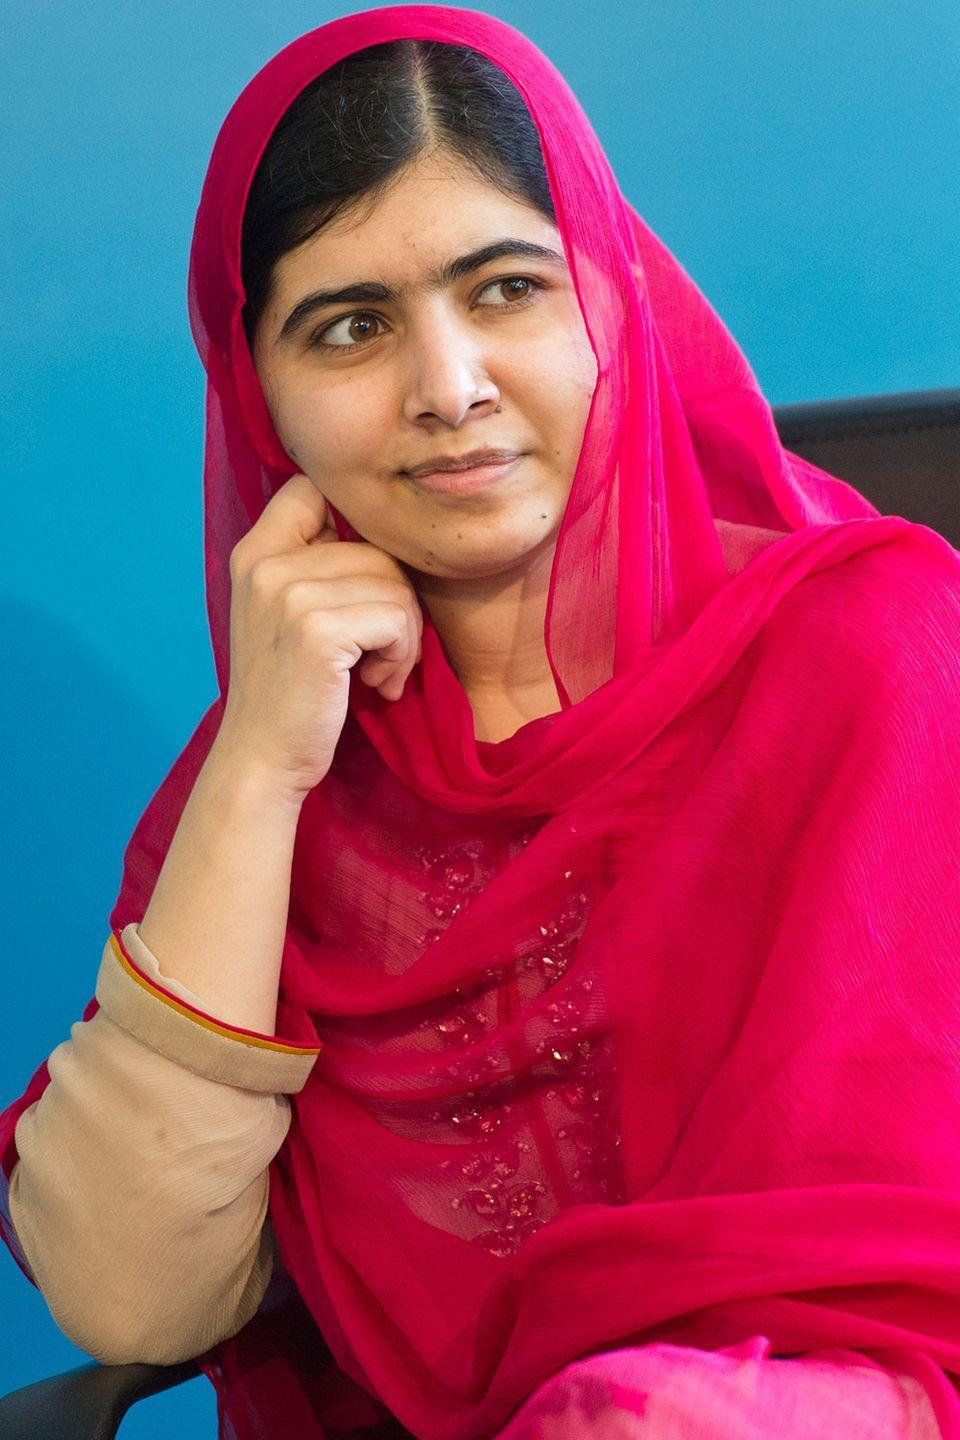 "<p>At 17, Yousafzai became the youngest Nobel Prize laureate for her humanitarian efforts. She captured the world's attention after being shot by the Taliban in Pakistan on her way to school because she was an advocate for women pursuing education. She is currently working towards her bachelor's degree at Oxford's Lady Margaret Hall while continuing her charity work through her organization, <a href=""https://www.malala.org/"" rel=""nofollow noopener"" target=""_blank"" data-ylk=""slk:The Malala Fund"" class=""link rapid-noclick-resp"">The Malala Fund</a>.</p>"